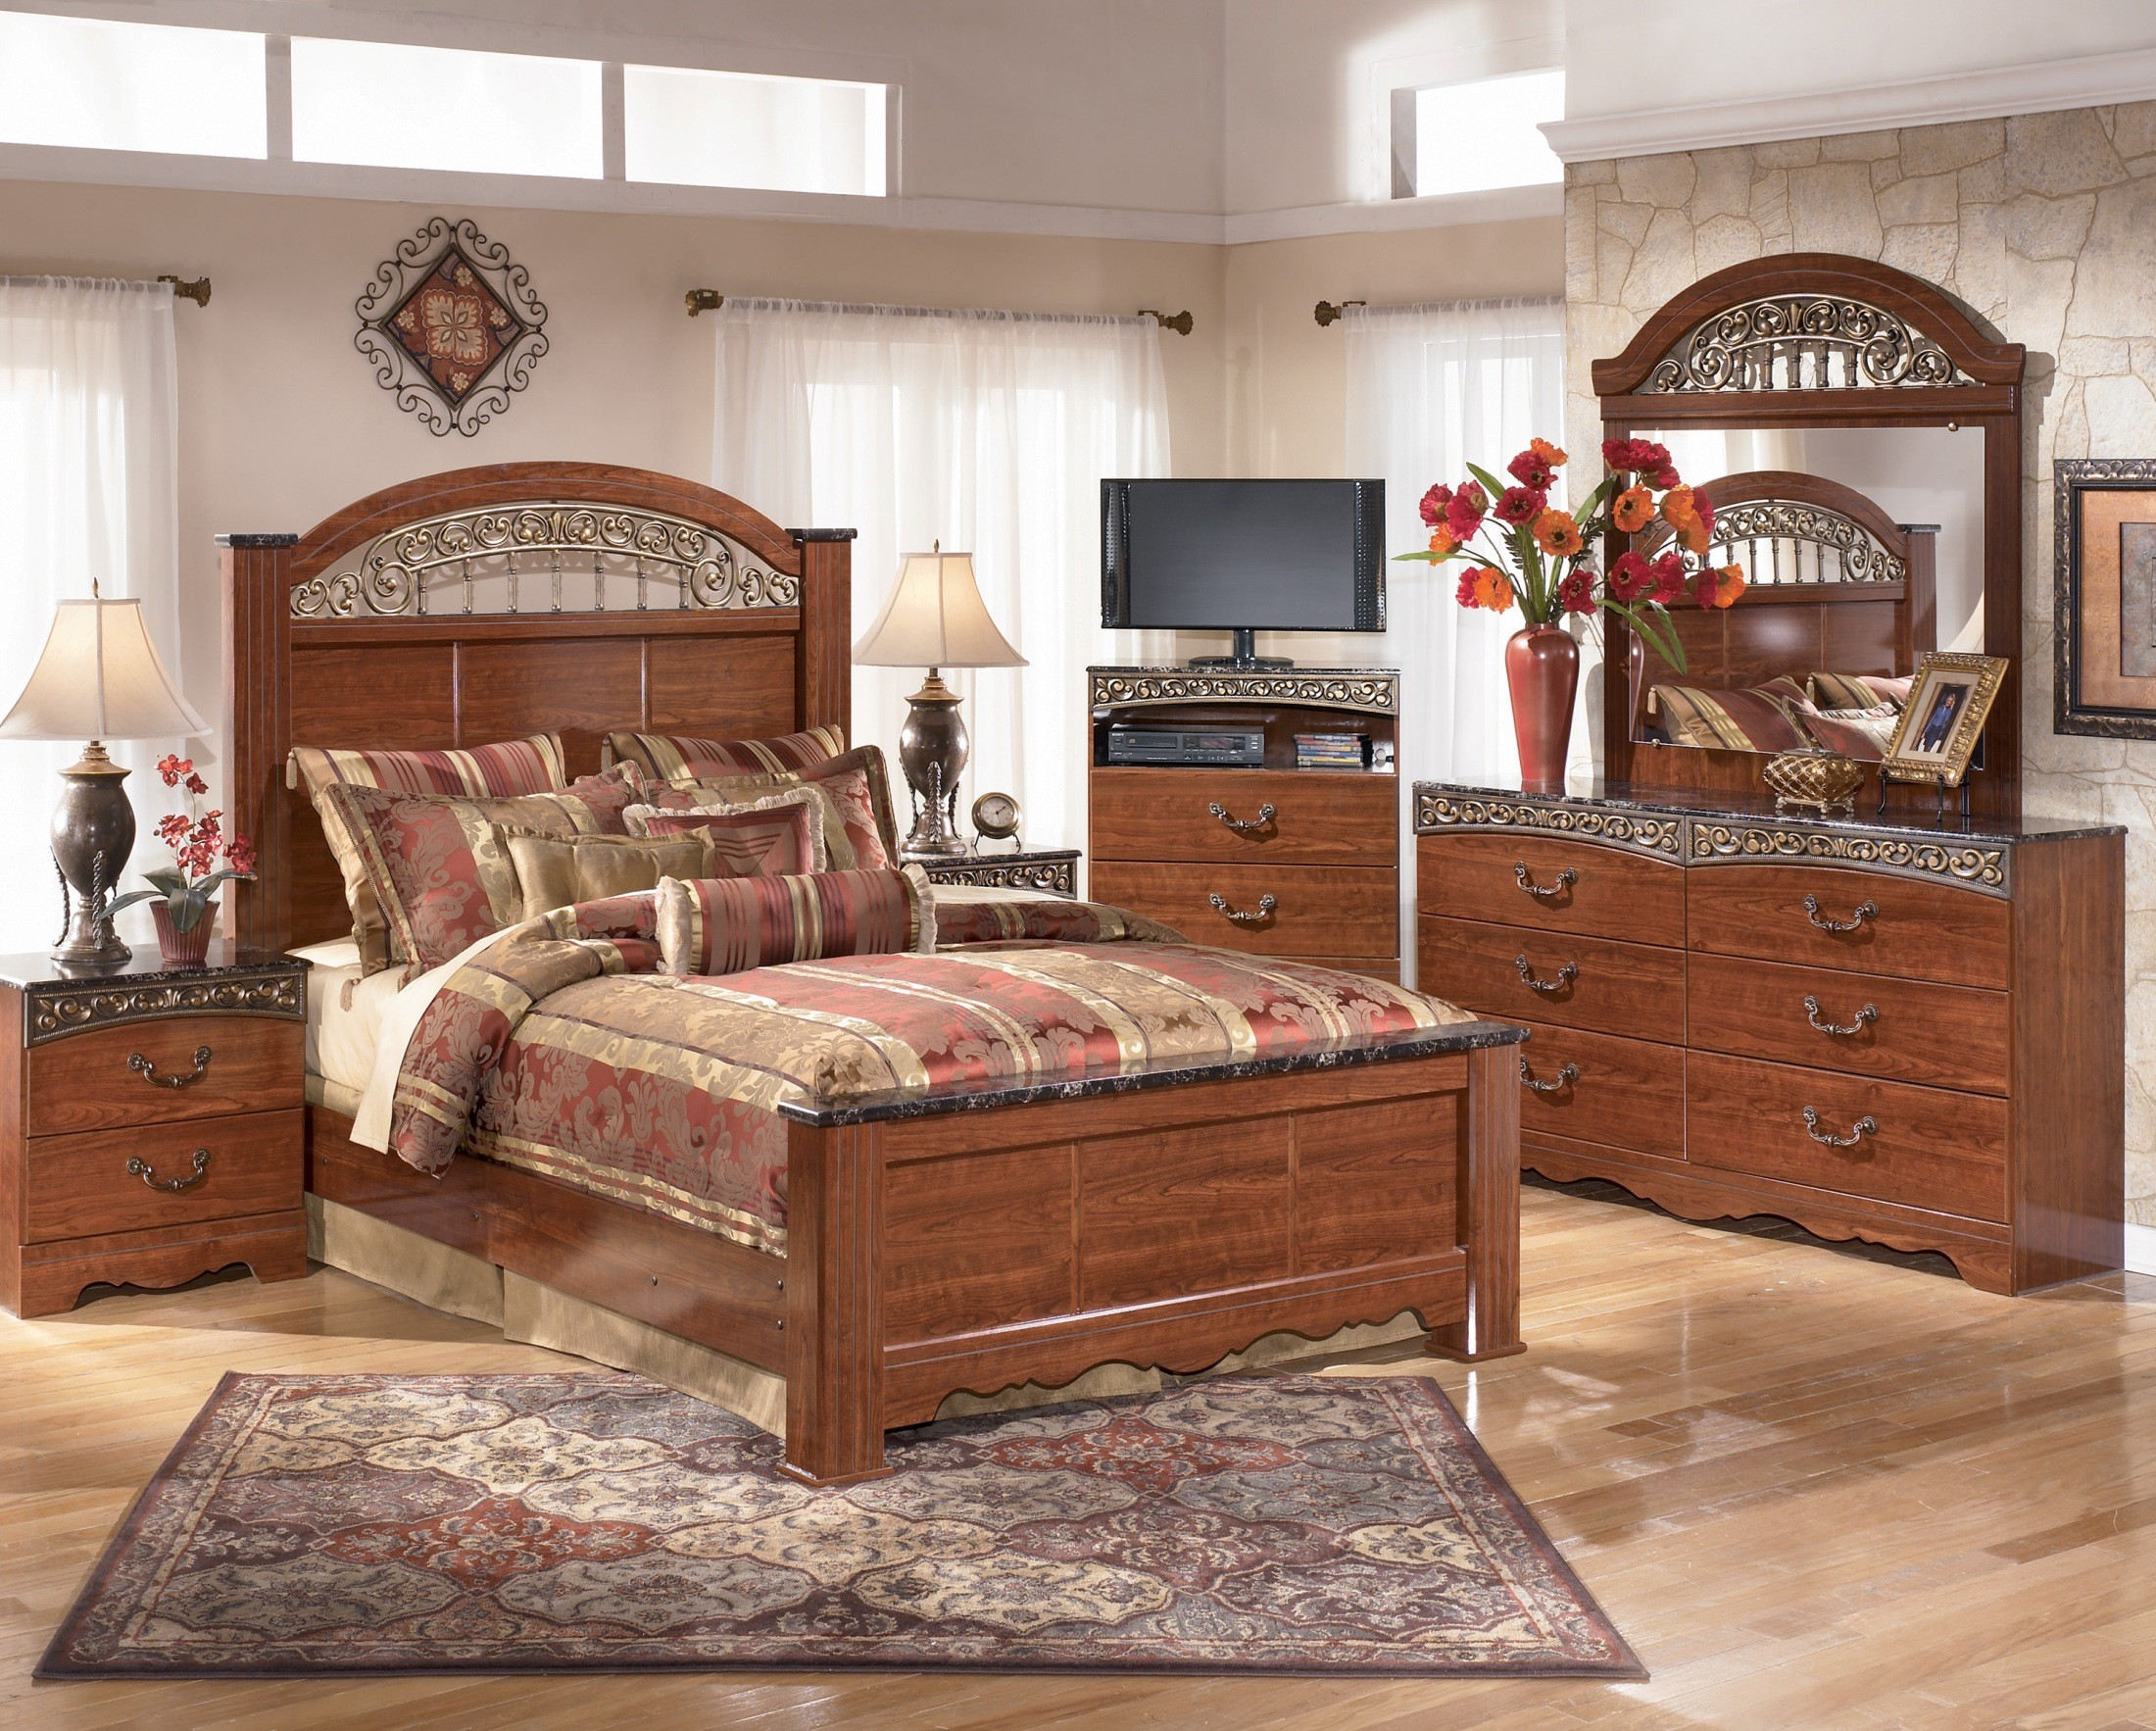 fairbrooks estate poster bedroom set from ashley b105 67 64 98 coleman furniture. Black Bedroom Furniture Sets. Home Design Ideas